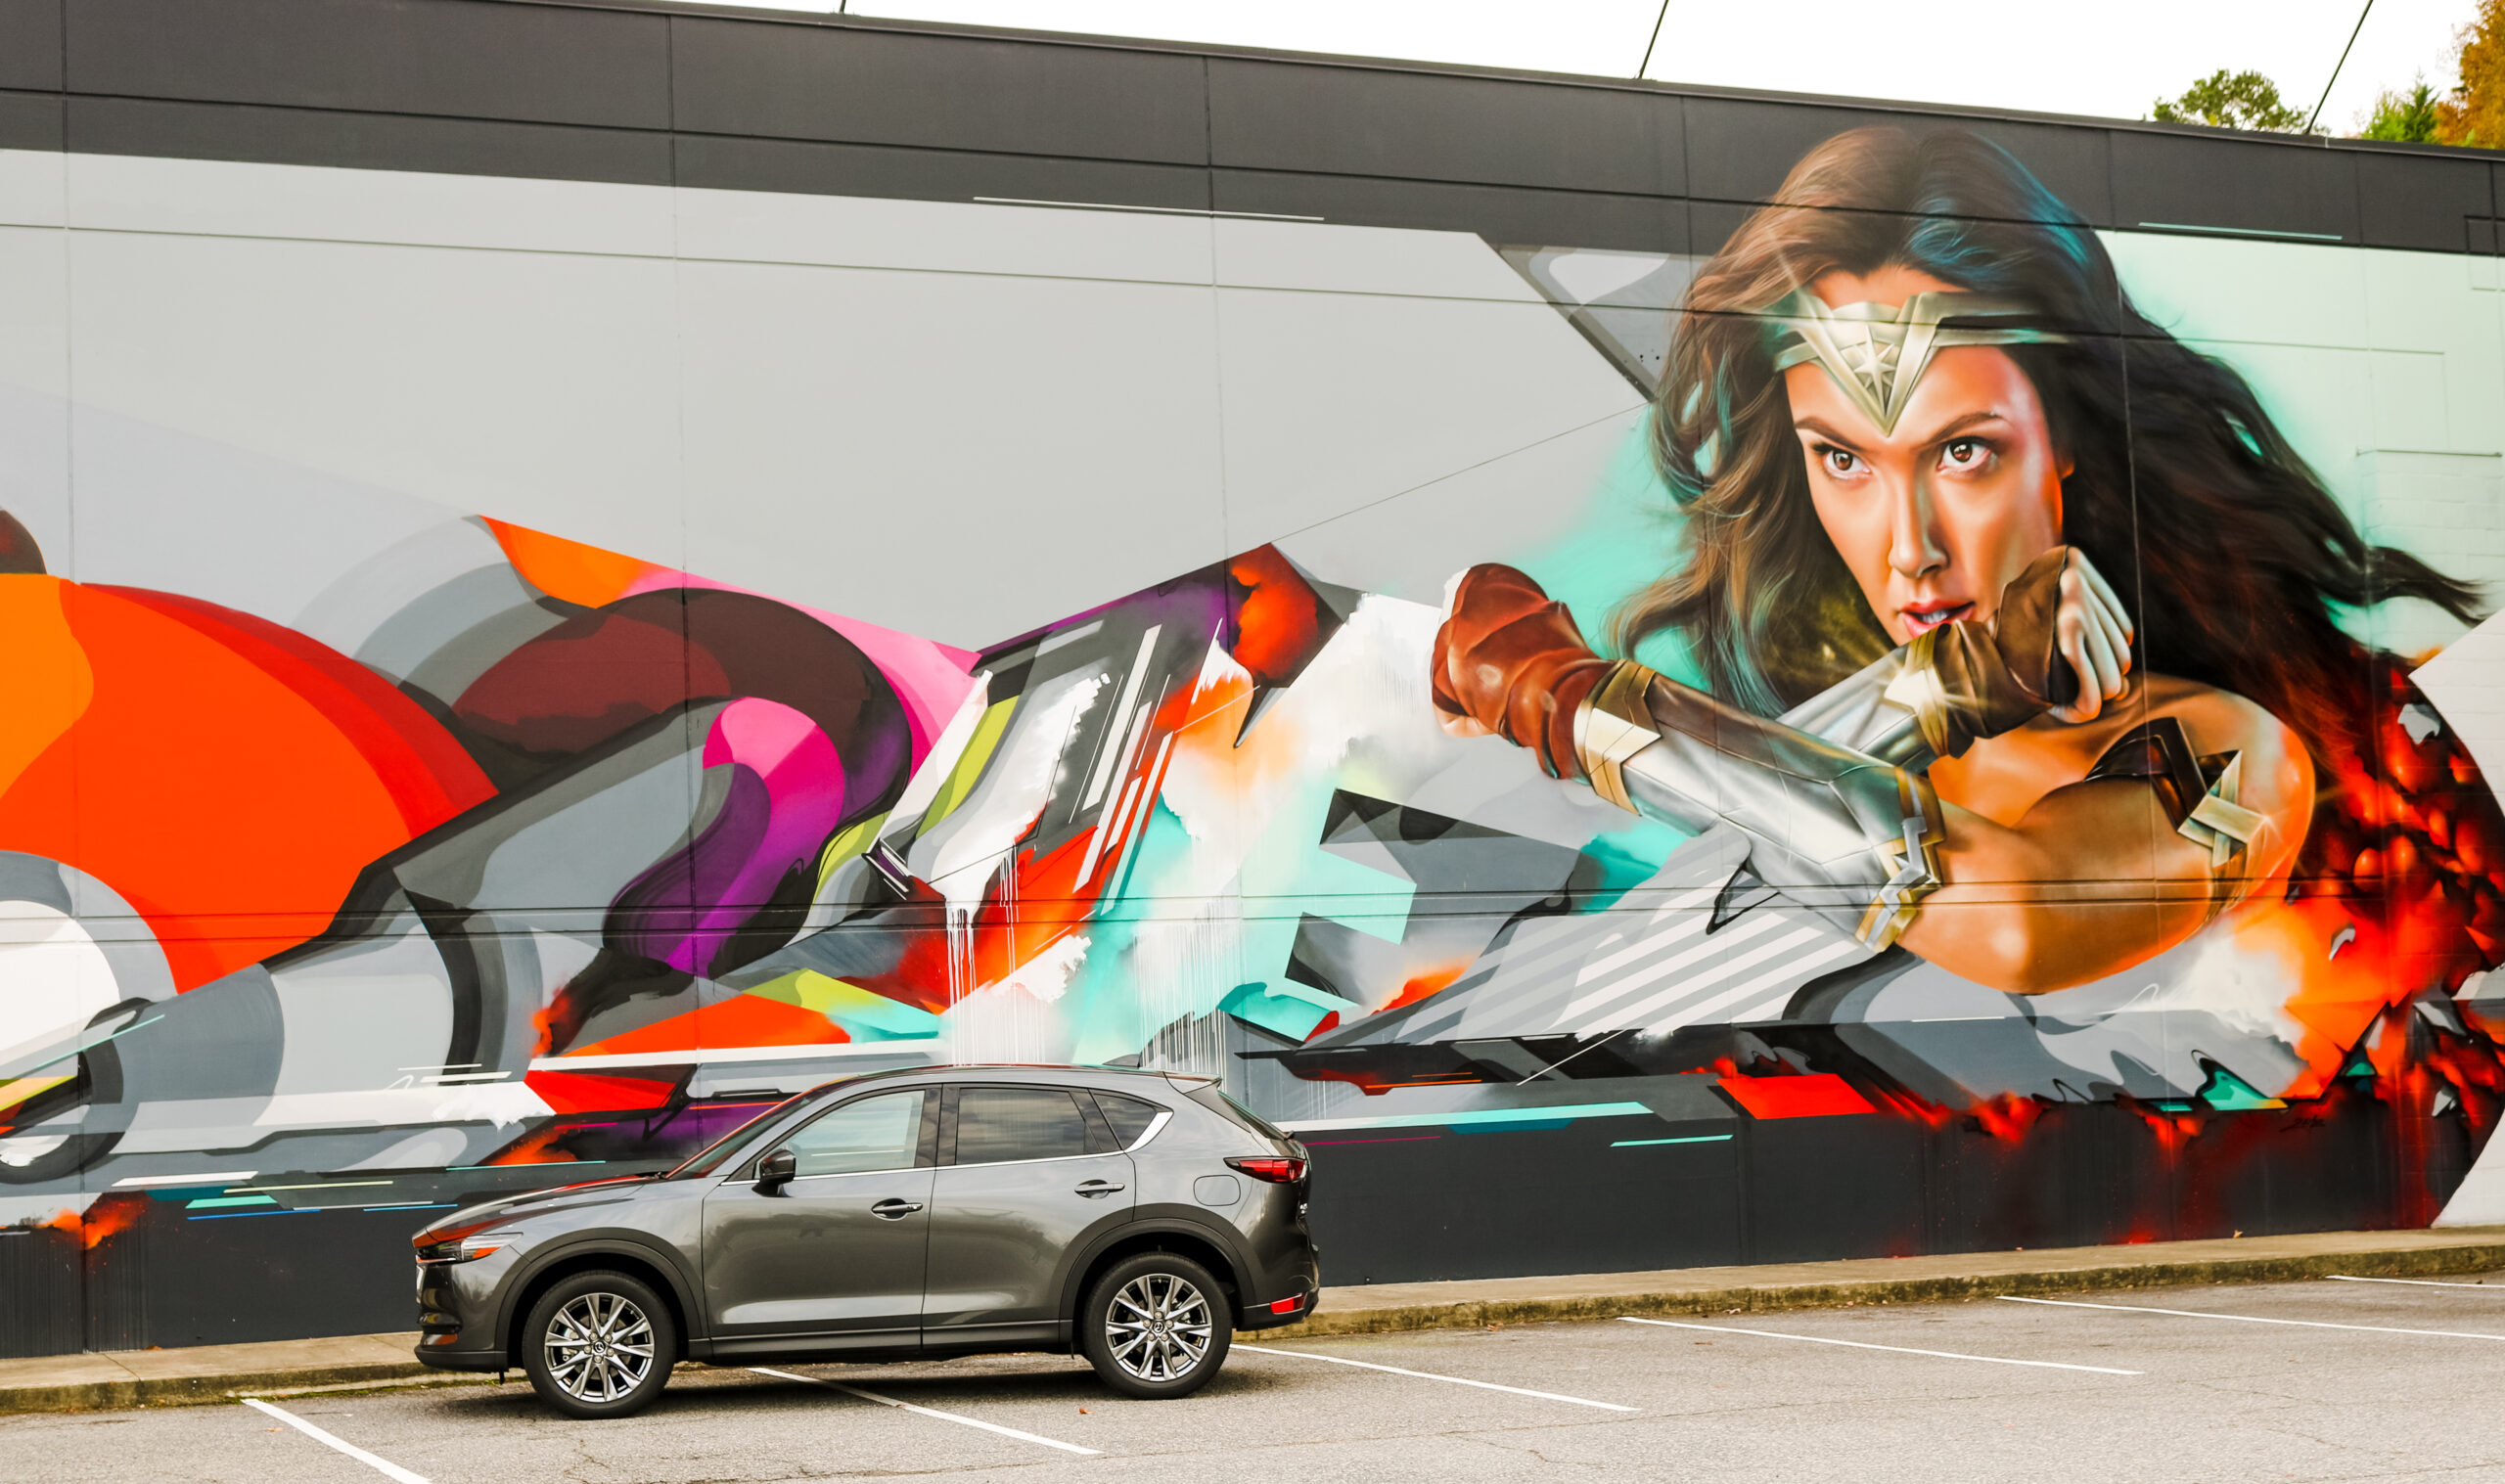 Wonder Woman mural in Greensboro